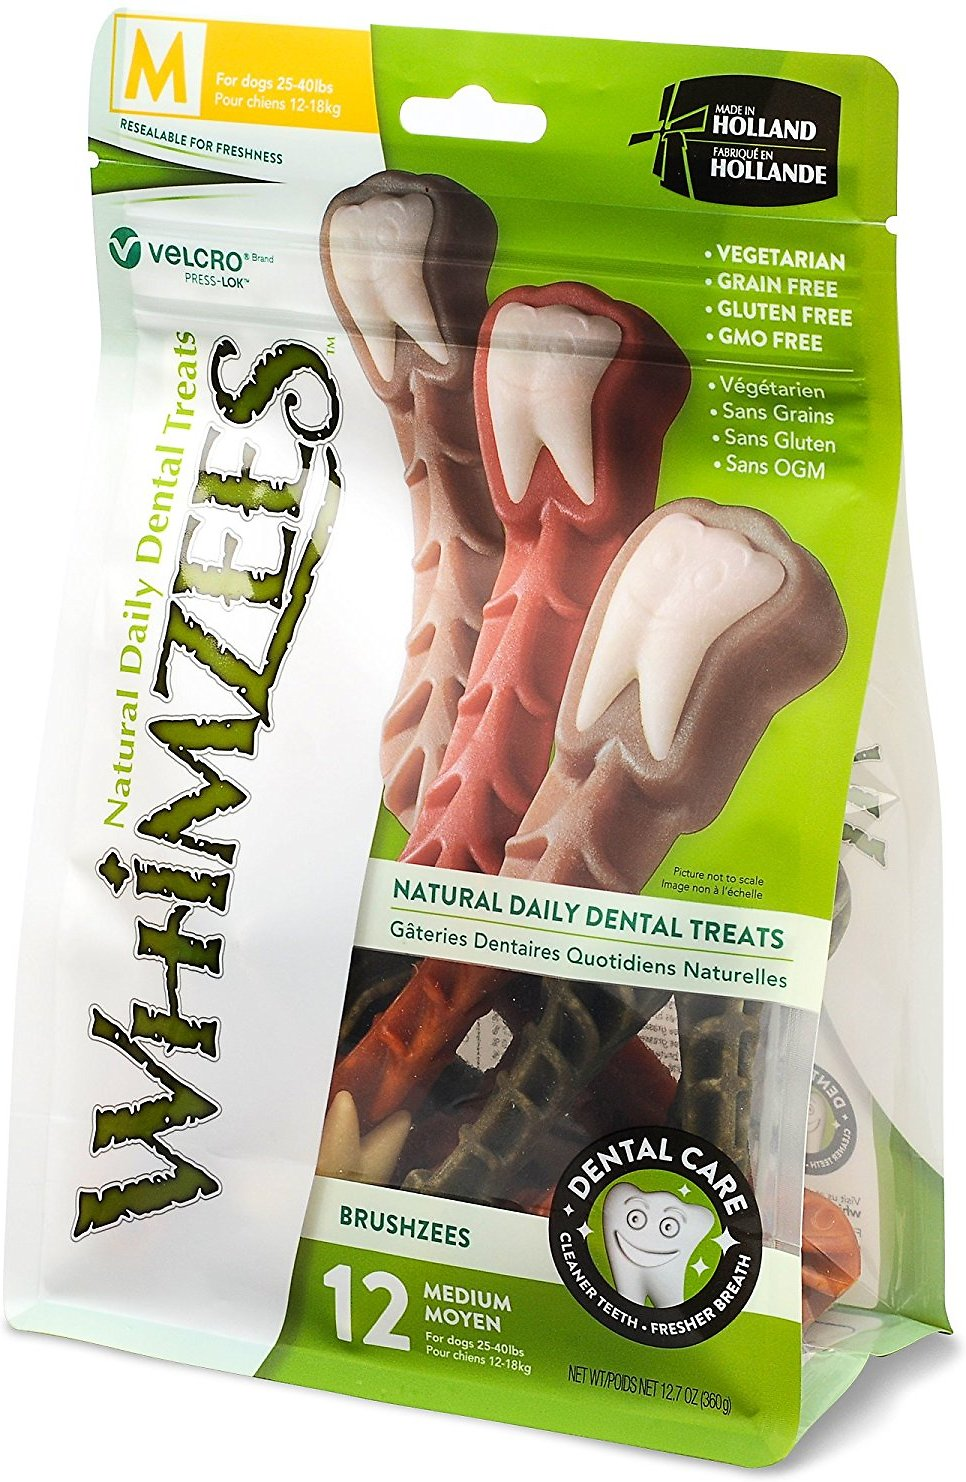 WHIMZEES Brushzees Dental Dog Treats, Small Image